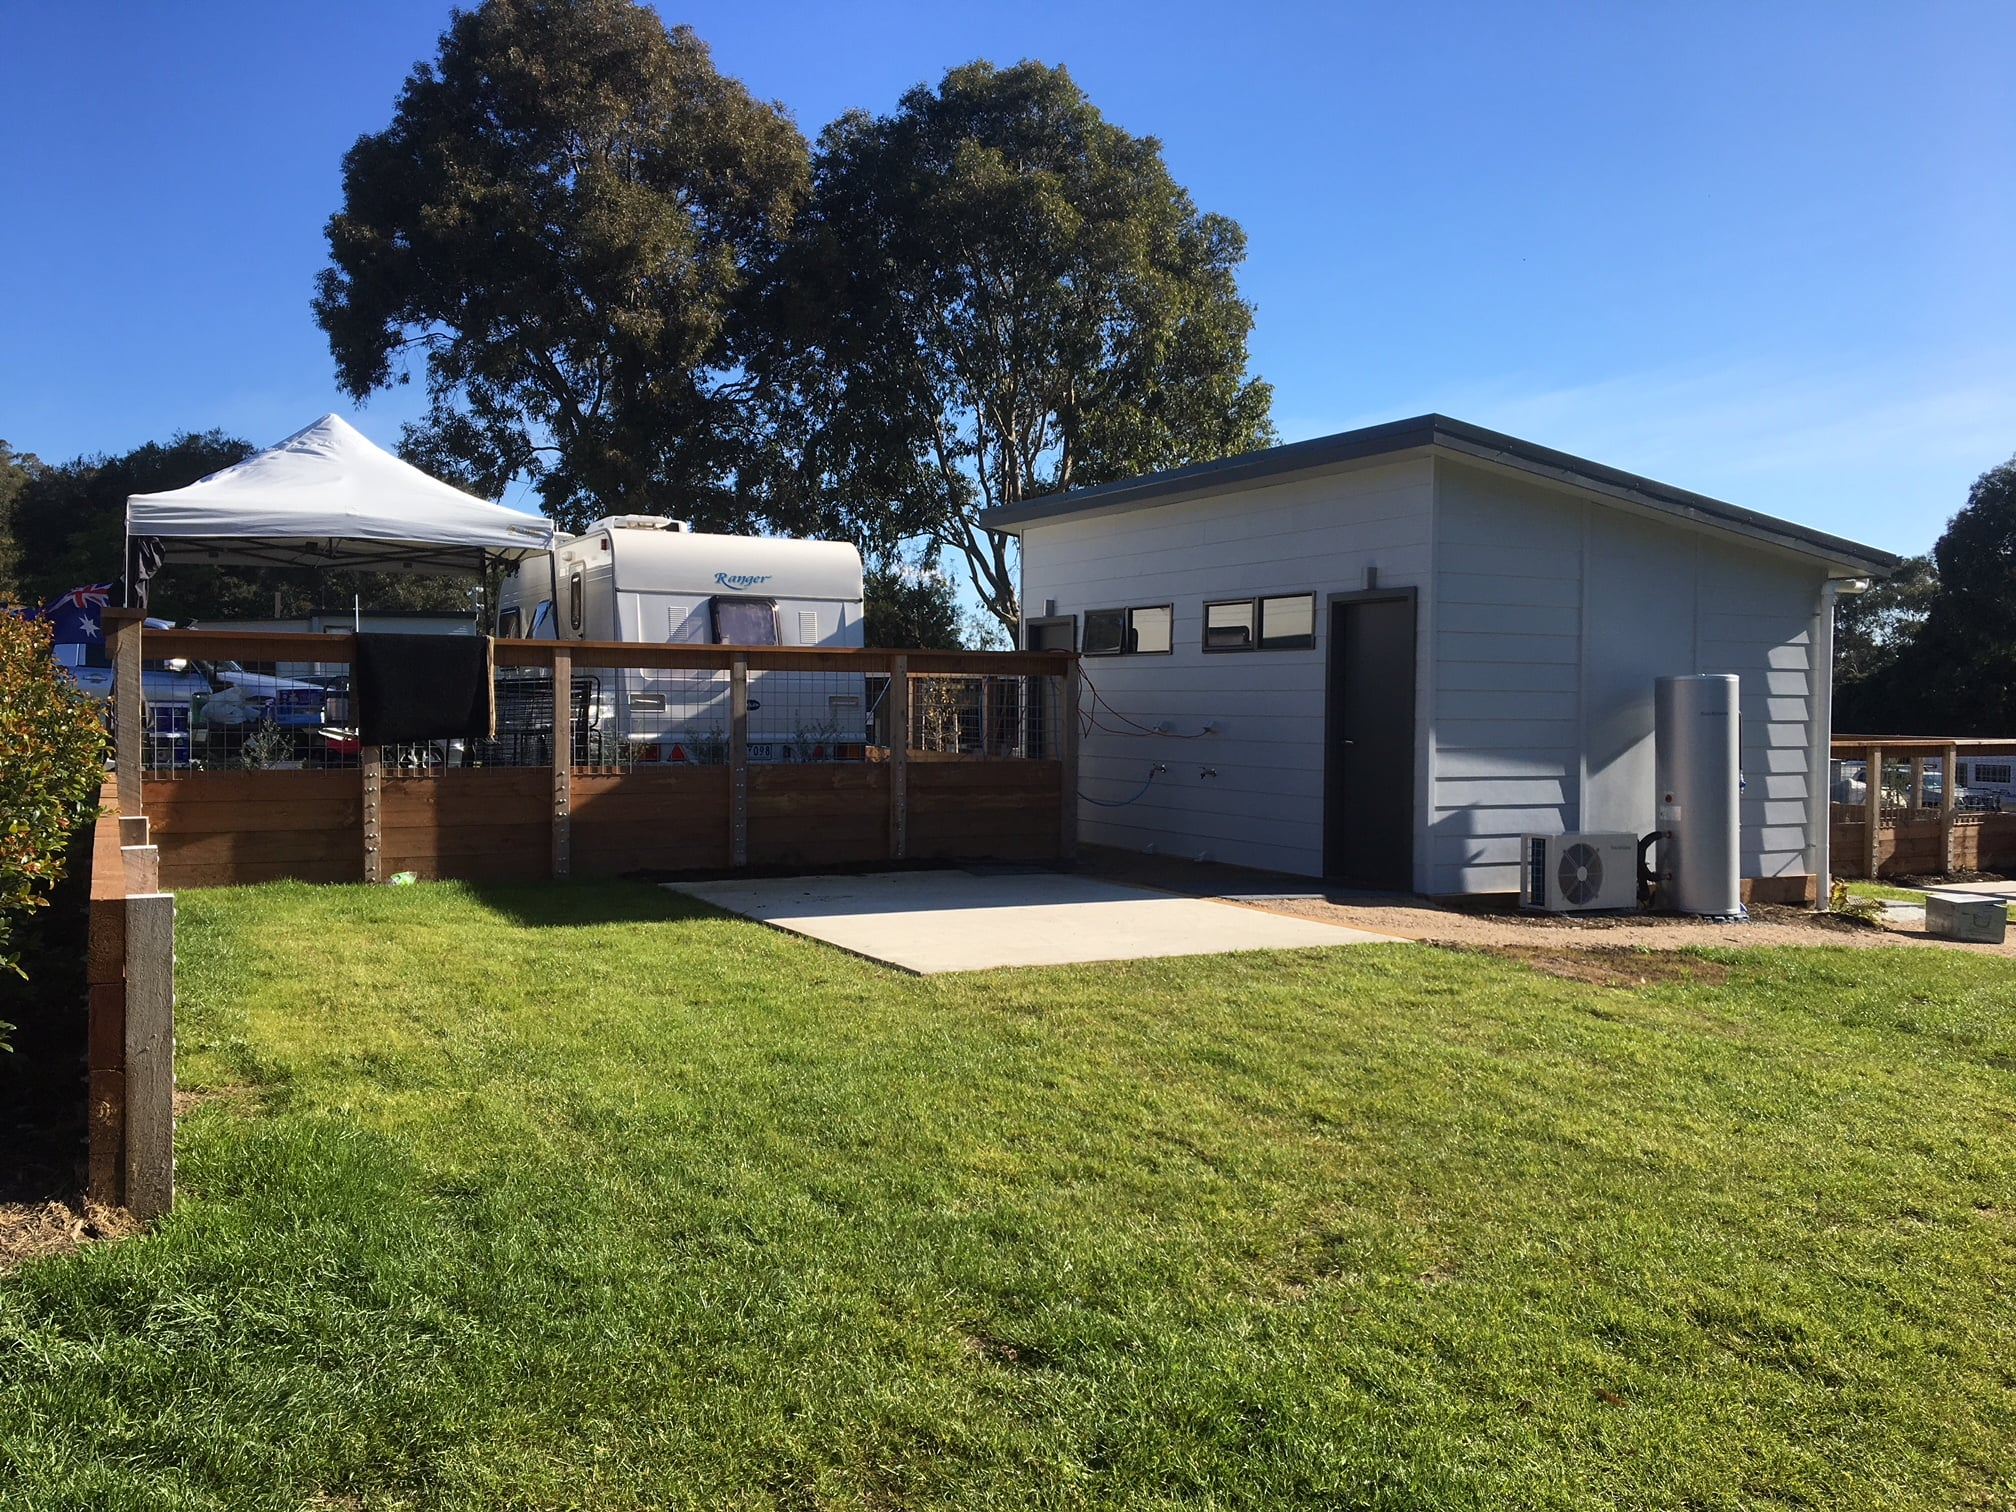 Twenty new ensuites provide campers access to private amenities during their stay at Lilydale Pines Hill Caravan Park